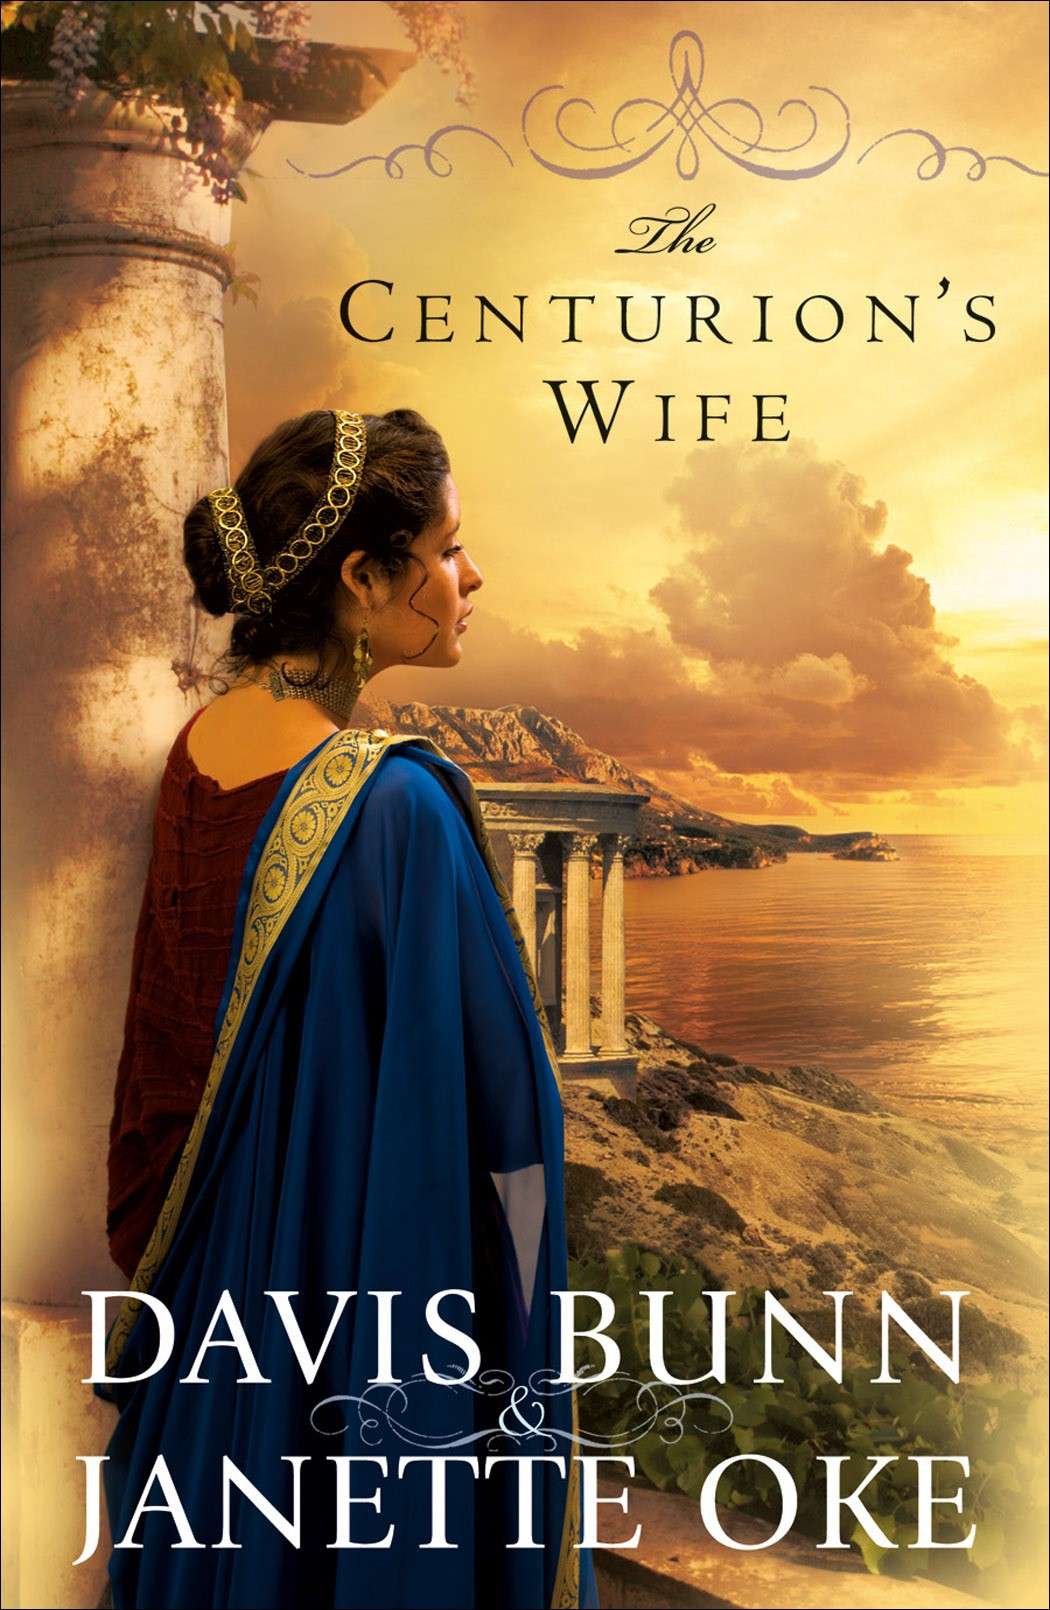 The Centurion's Wife by Bunn & Oke